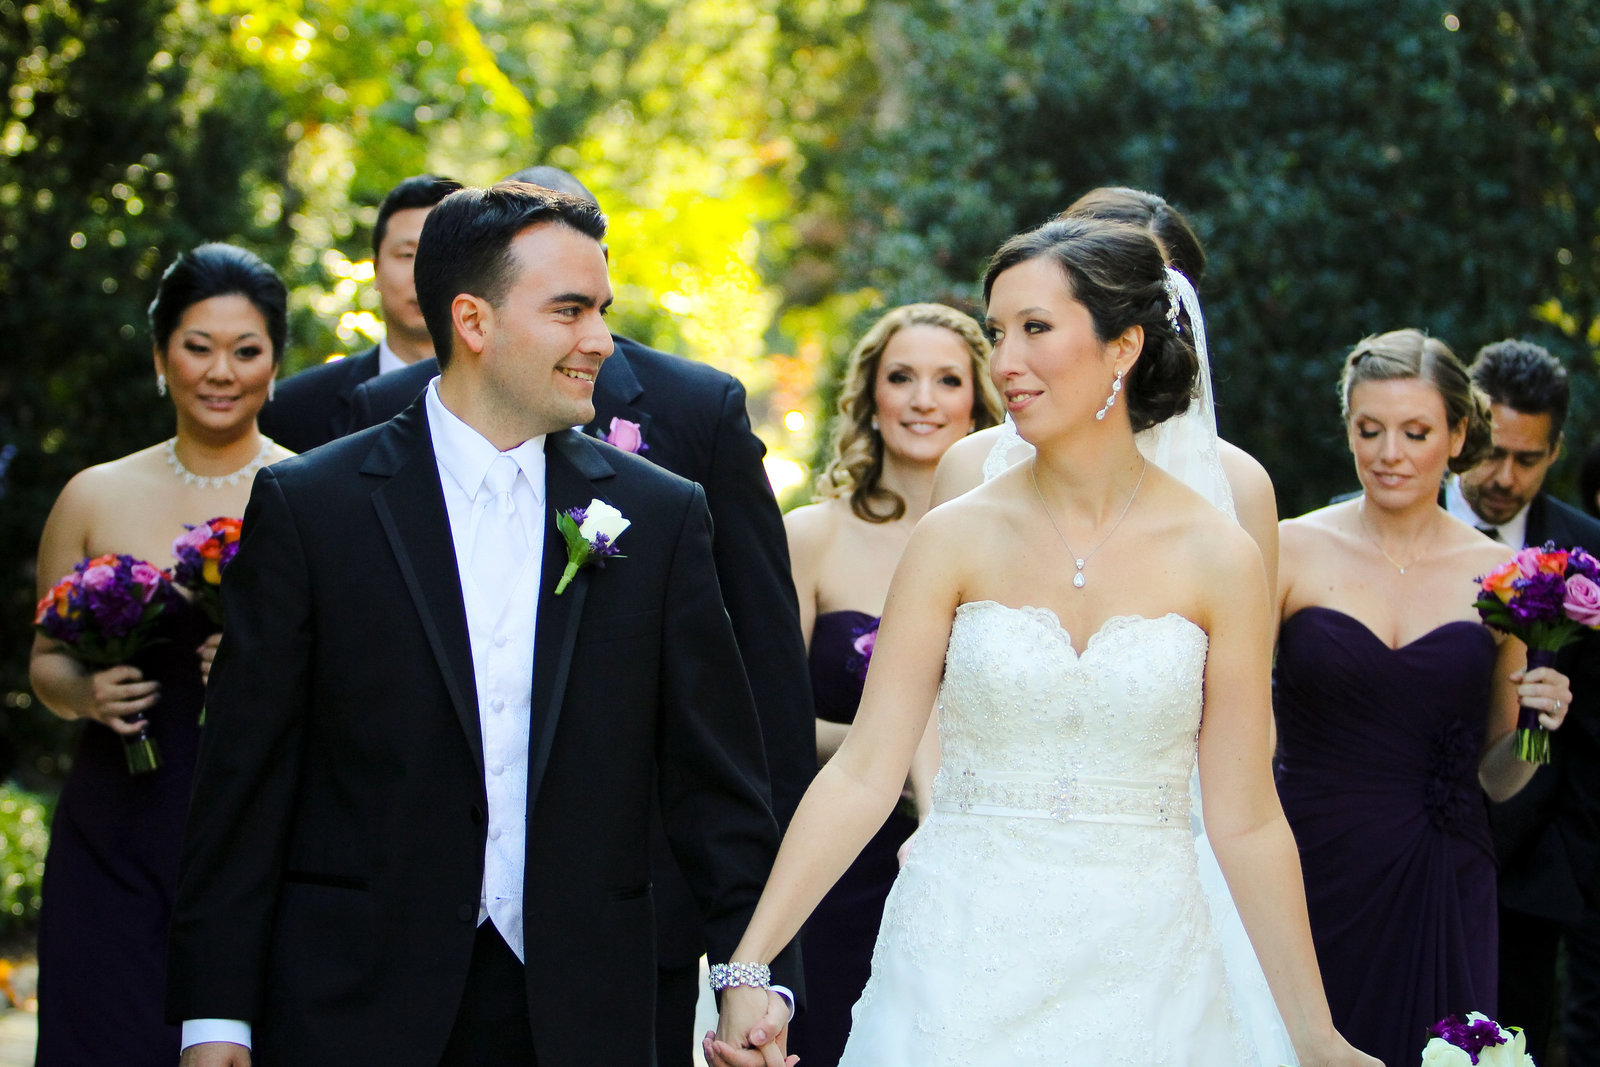 van-vleck-house-wedding-photos-IMG_6455